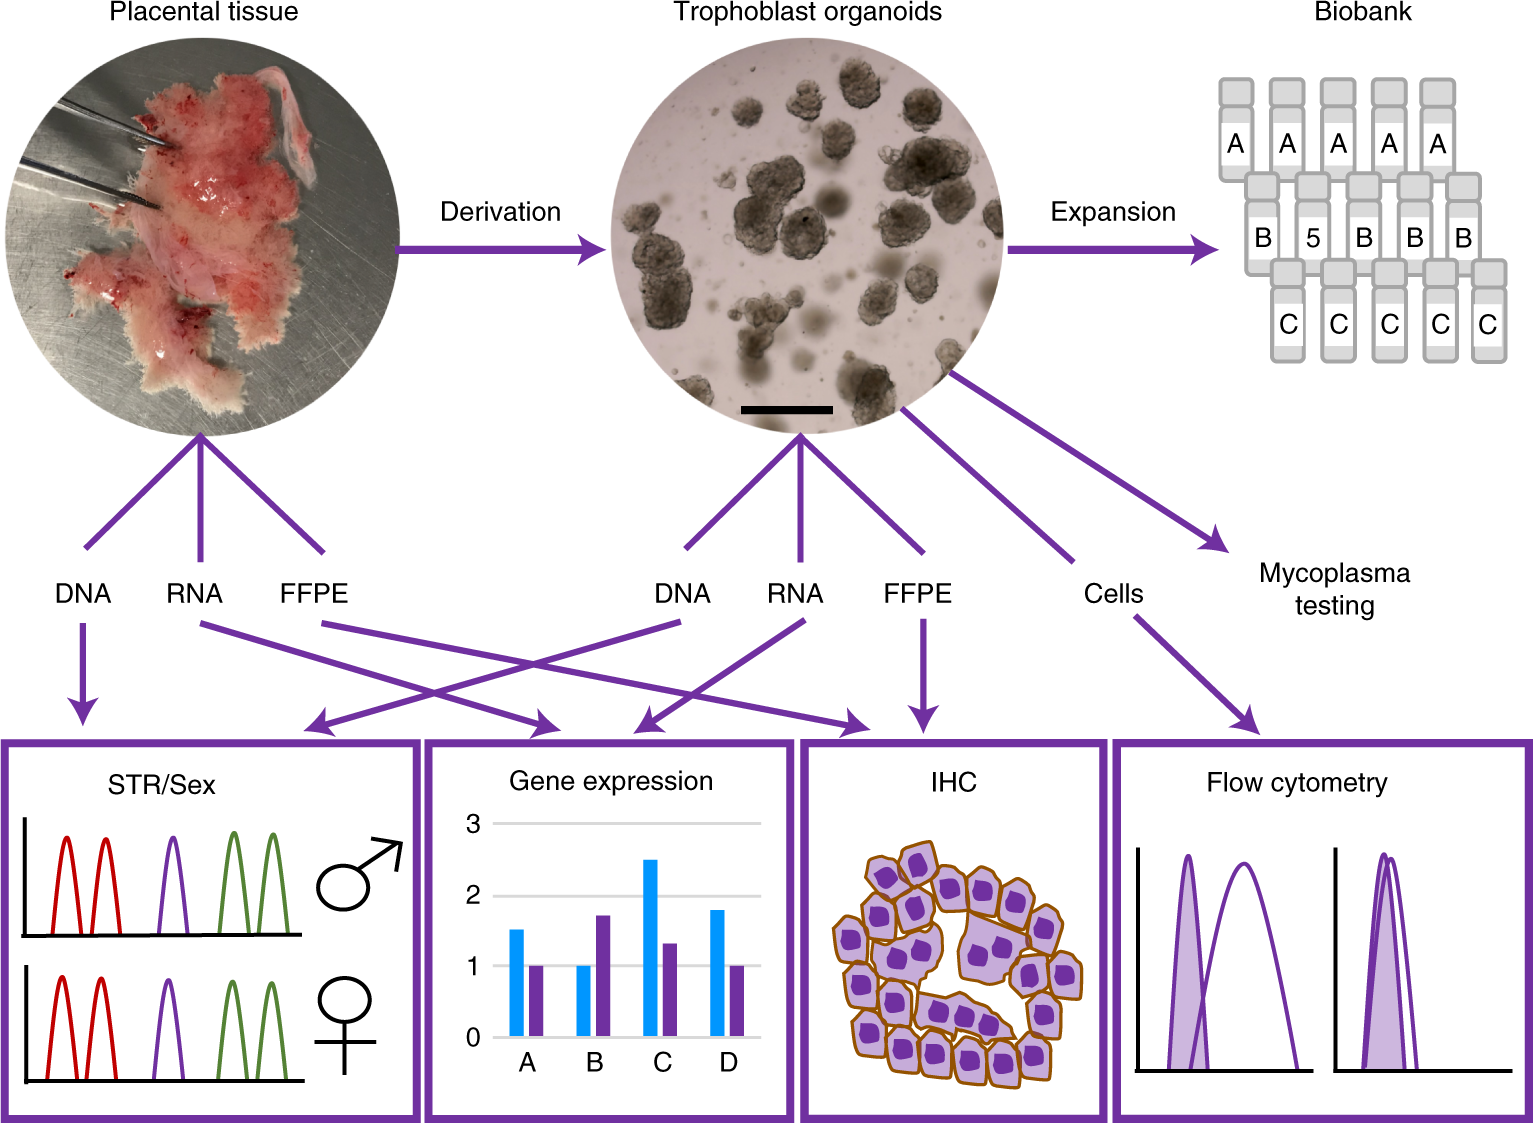 Summary of derivation, validation and quality control of trophoblast organoids.